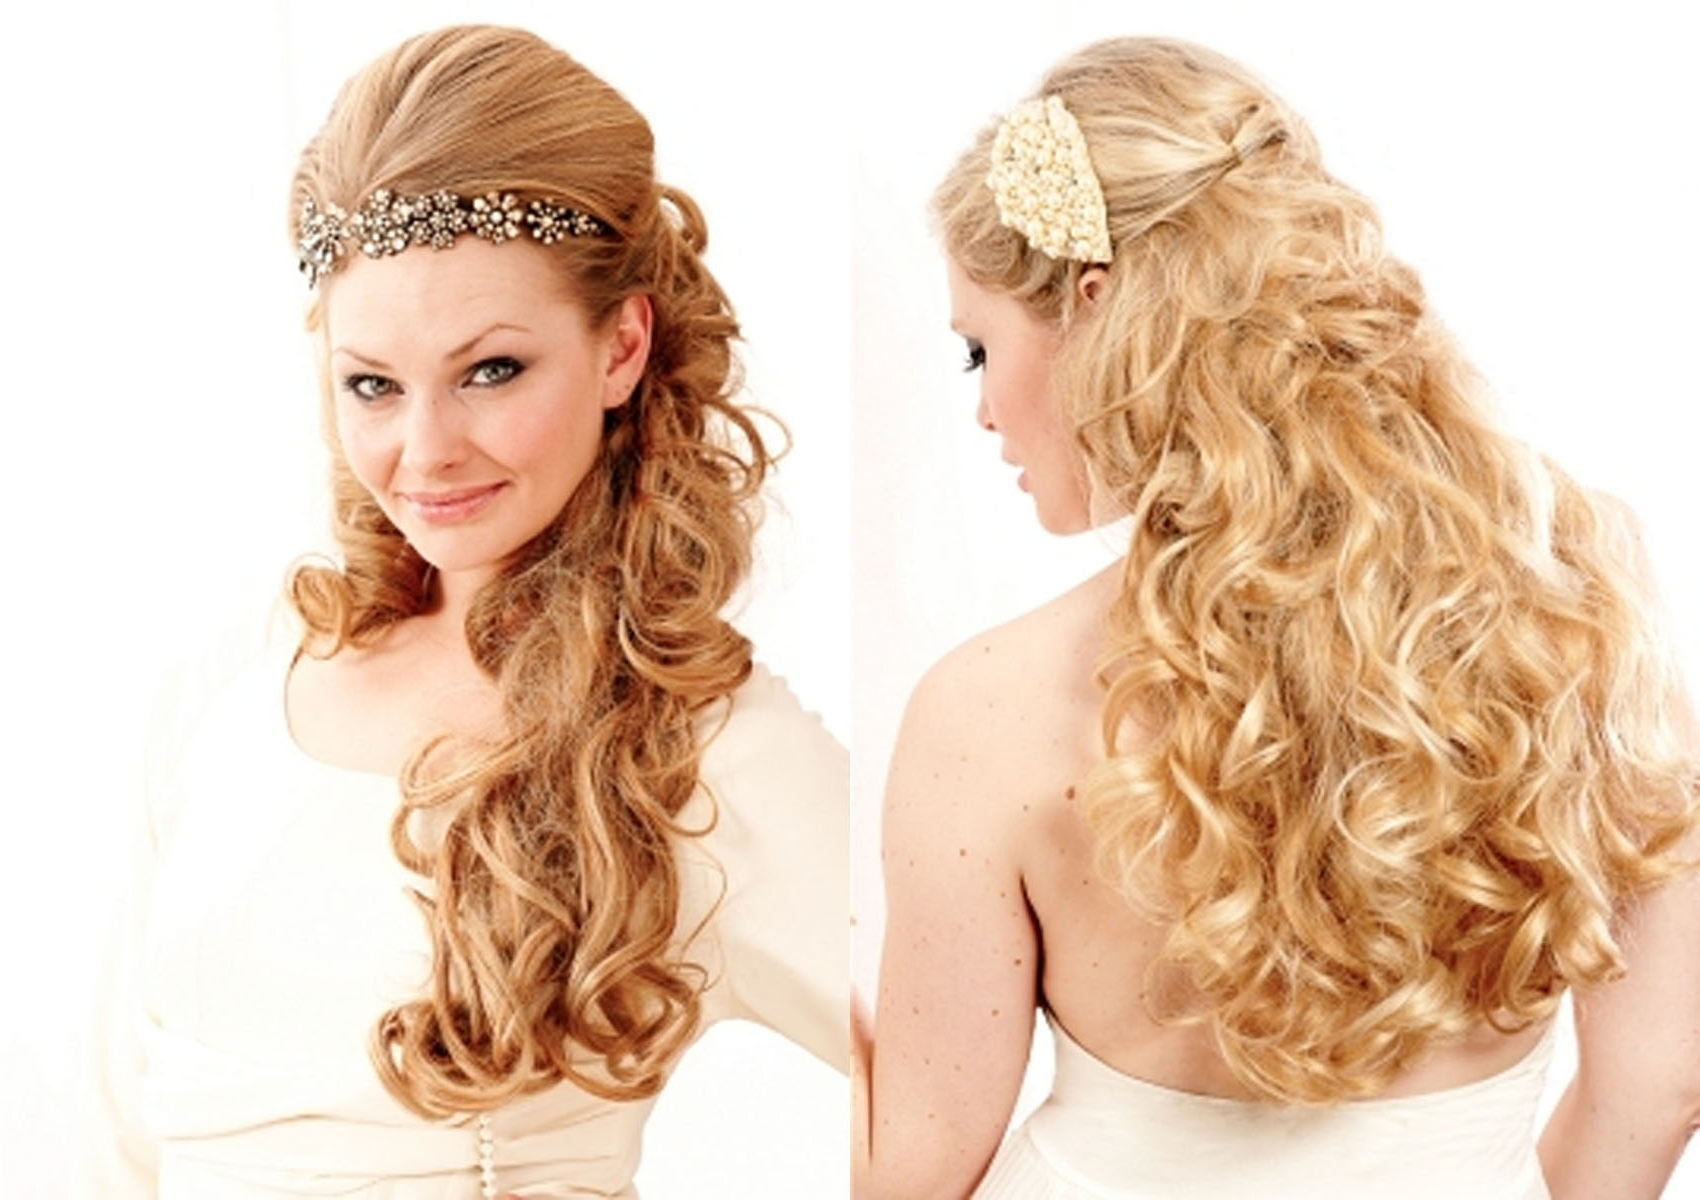 Formal Hairstyles For Long Hair Wedding Trendy | Medium Hair Styles With Regard To Trendy Updo Hairstyles For Long Hair (View 8 of 15)